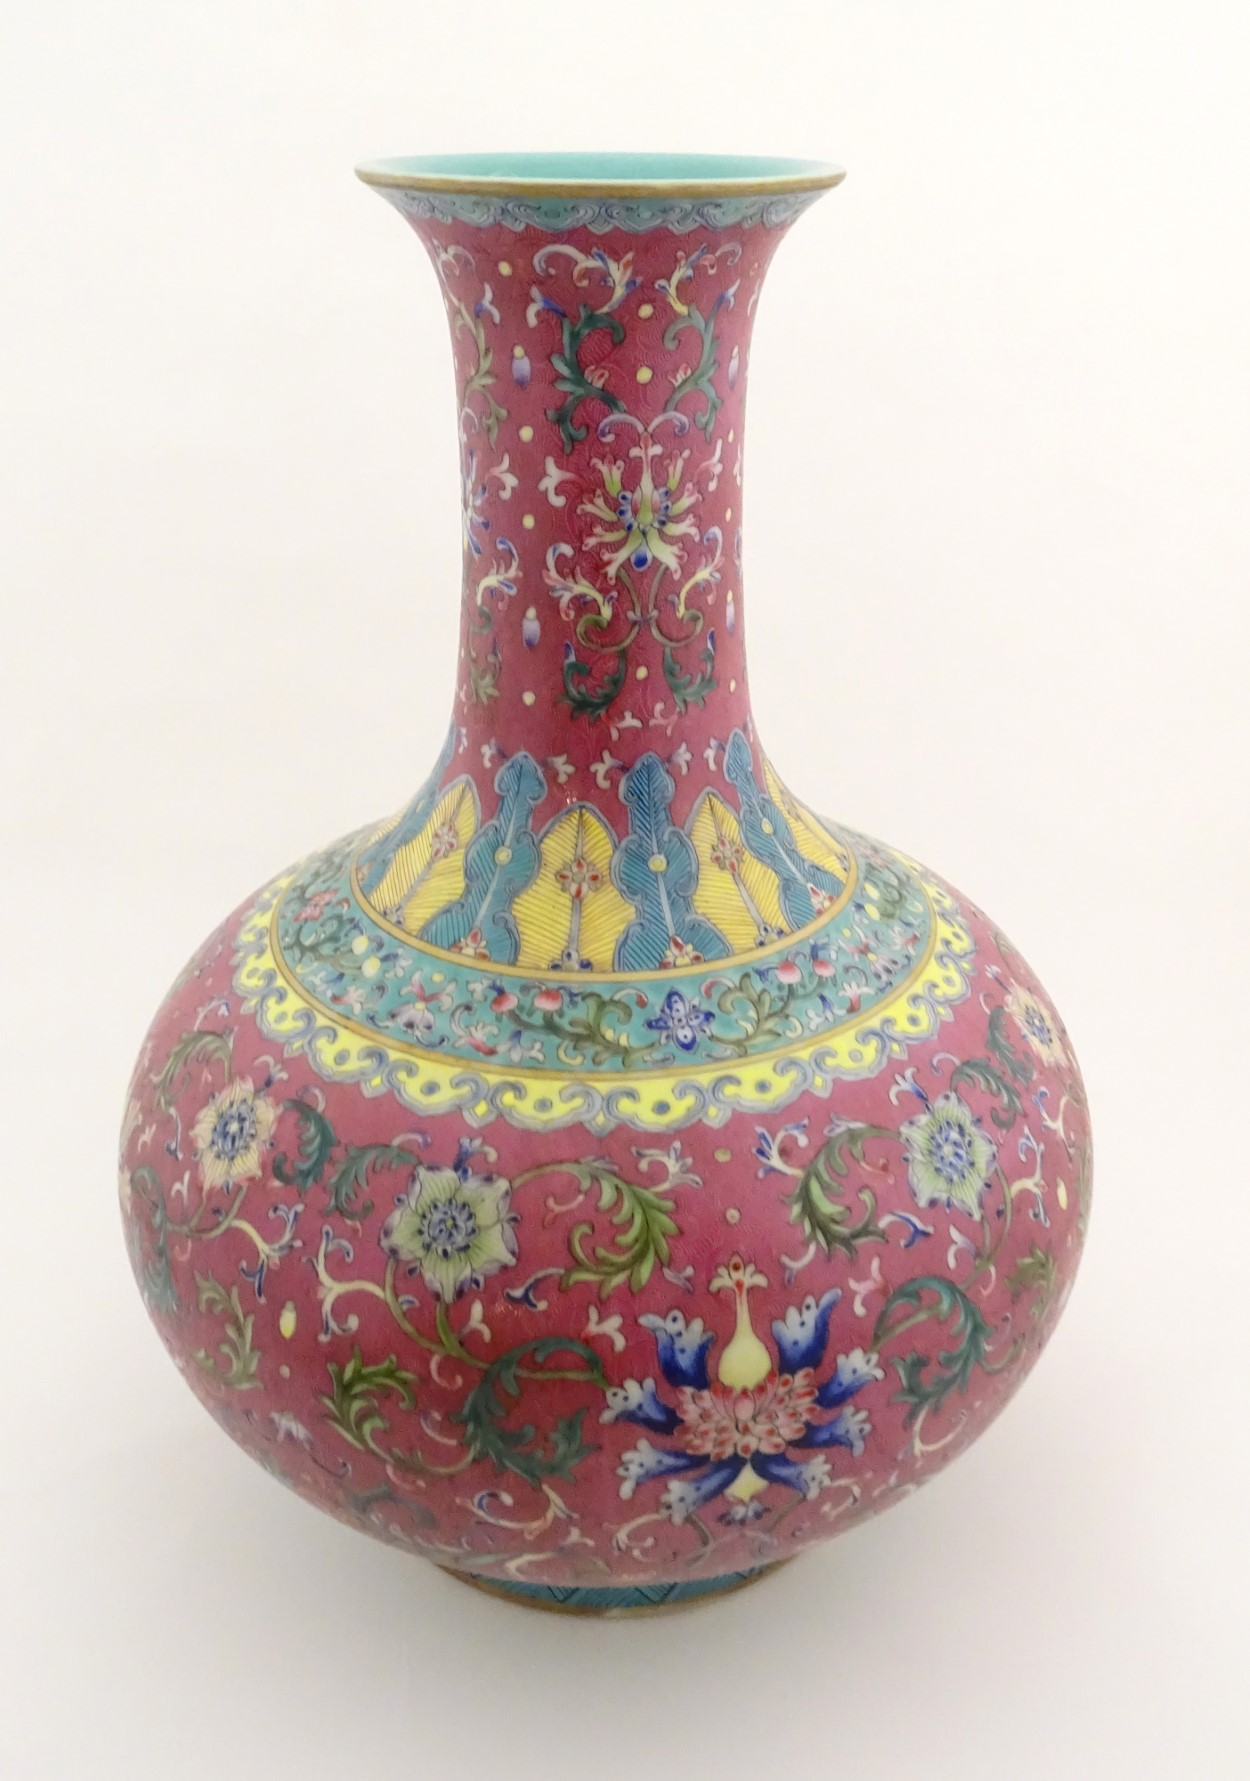 Lot 47 - A Chinese famille rose baluster vase decorated with flowers and foliage,